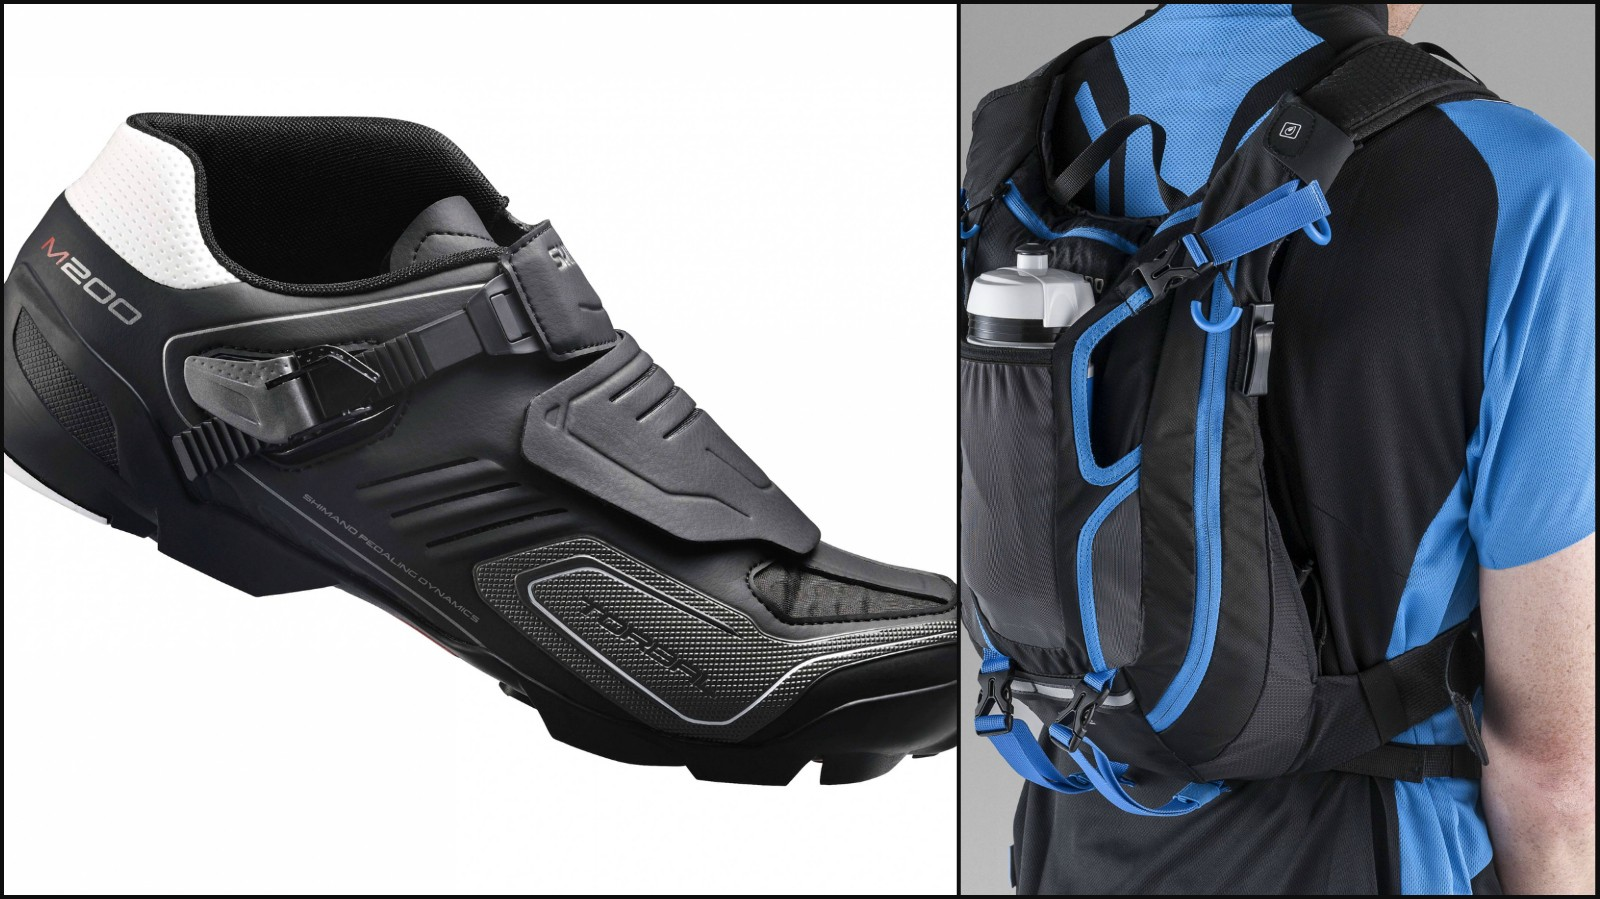 Shimano's new enduro shoe and backpack